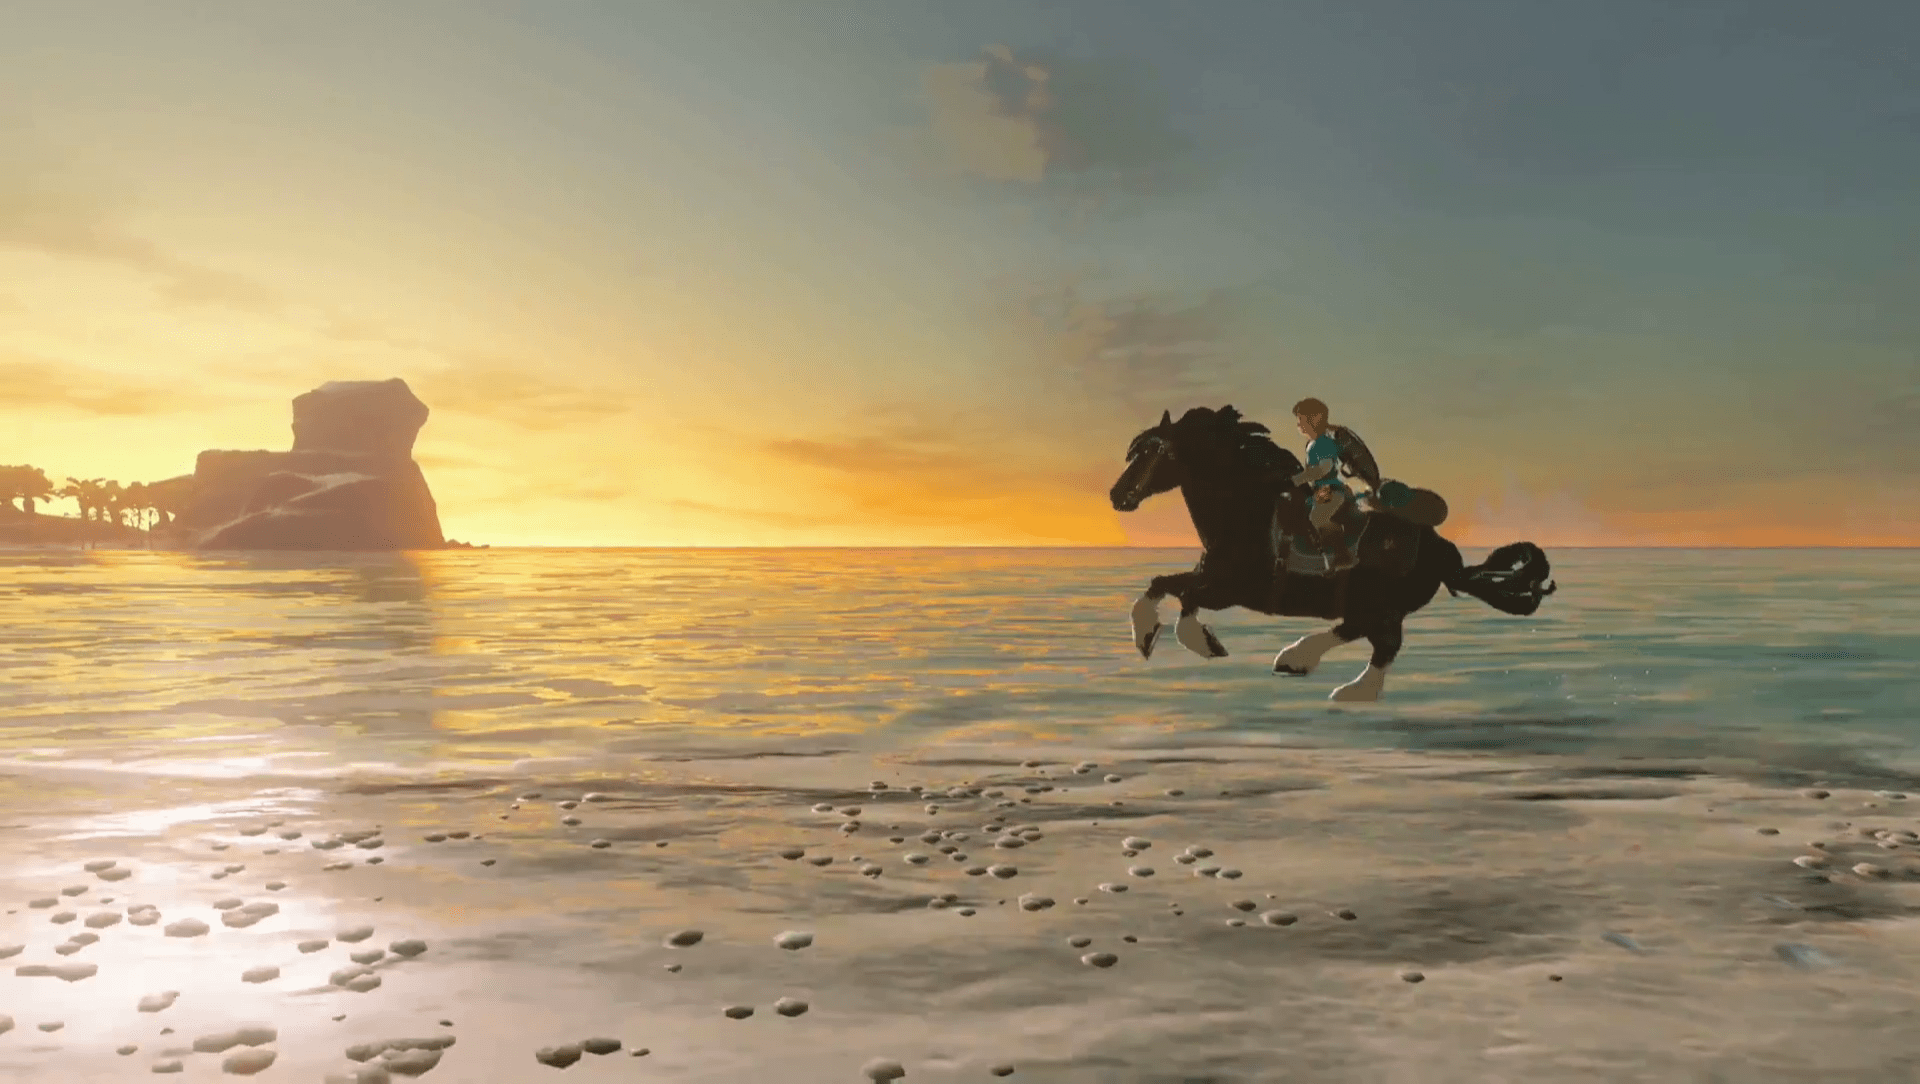 Legend Of Zelda Breath Of The Wild Wallpaper Hd Want To Know How Much Power Switch Has Zelda Runs At 900p